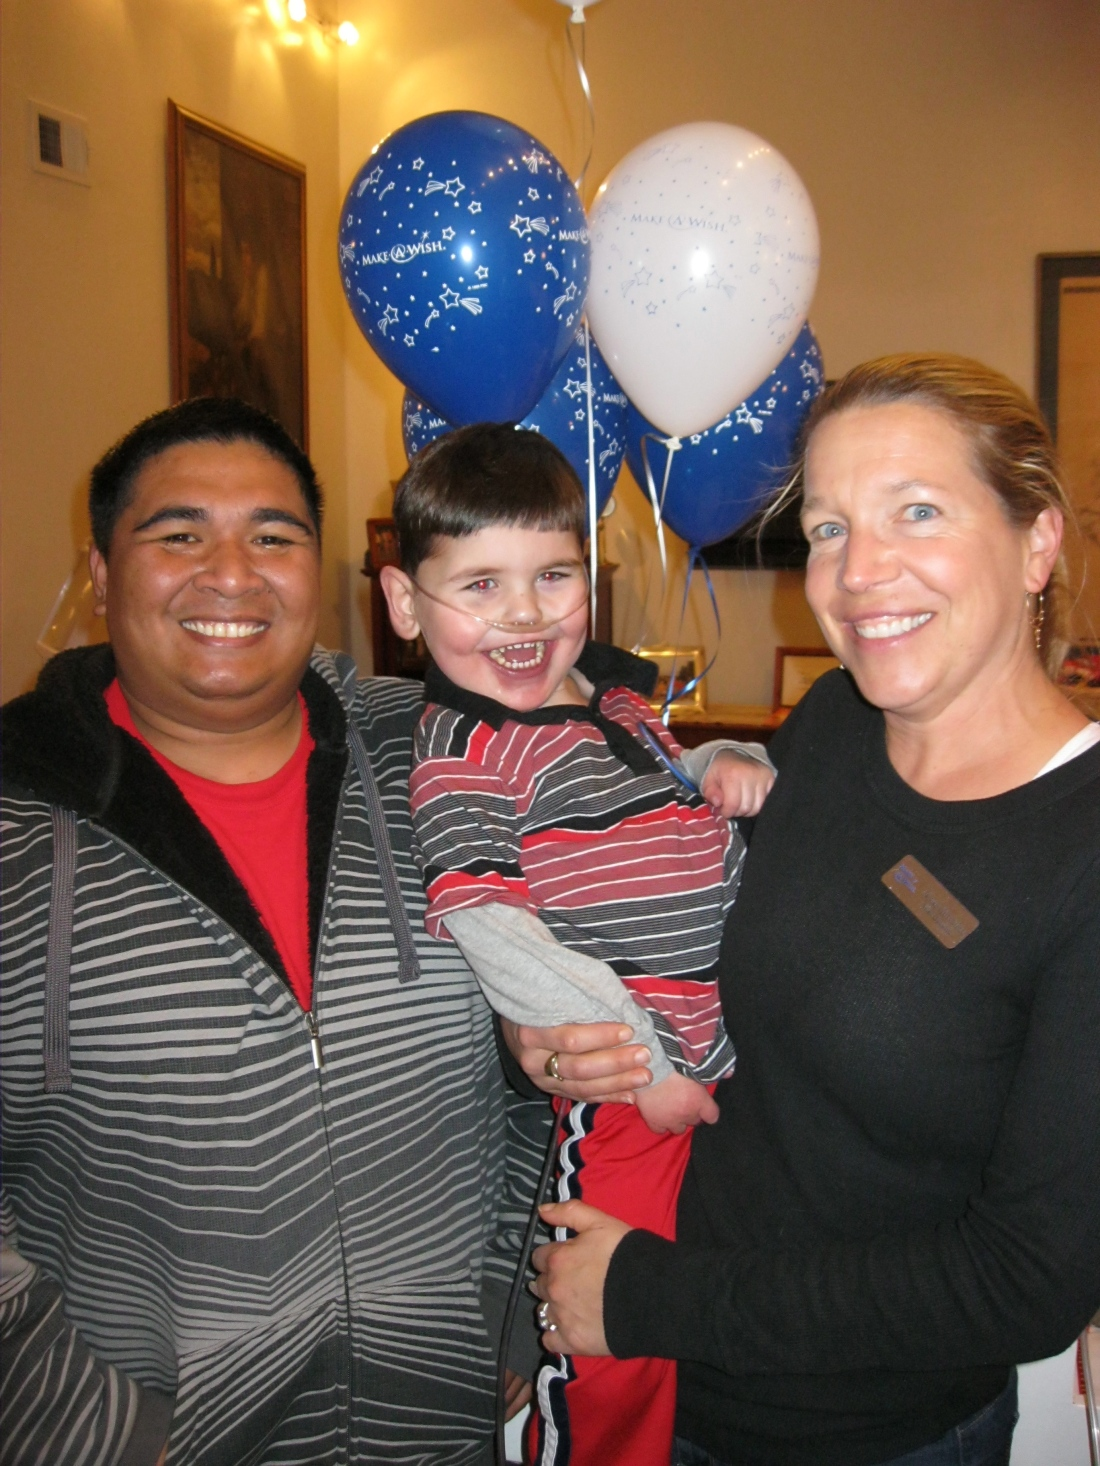 Wish granters Anne and Joseph share the fun with Rudy!